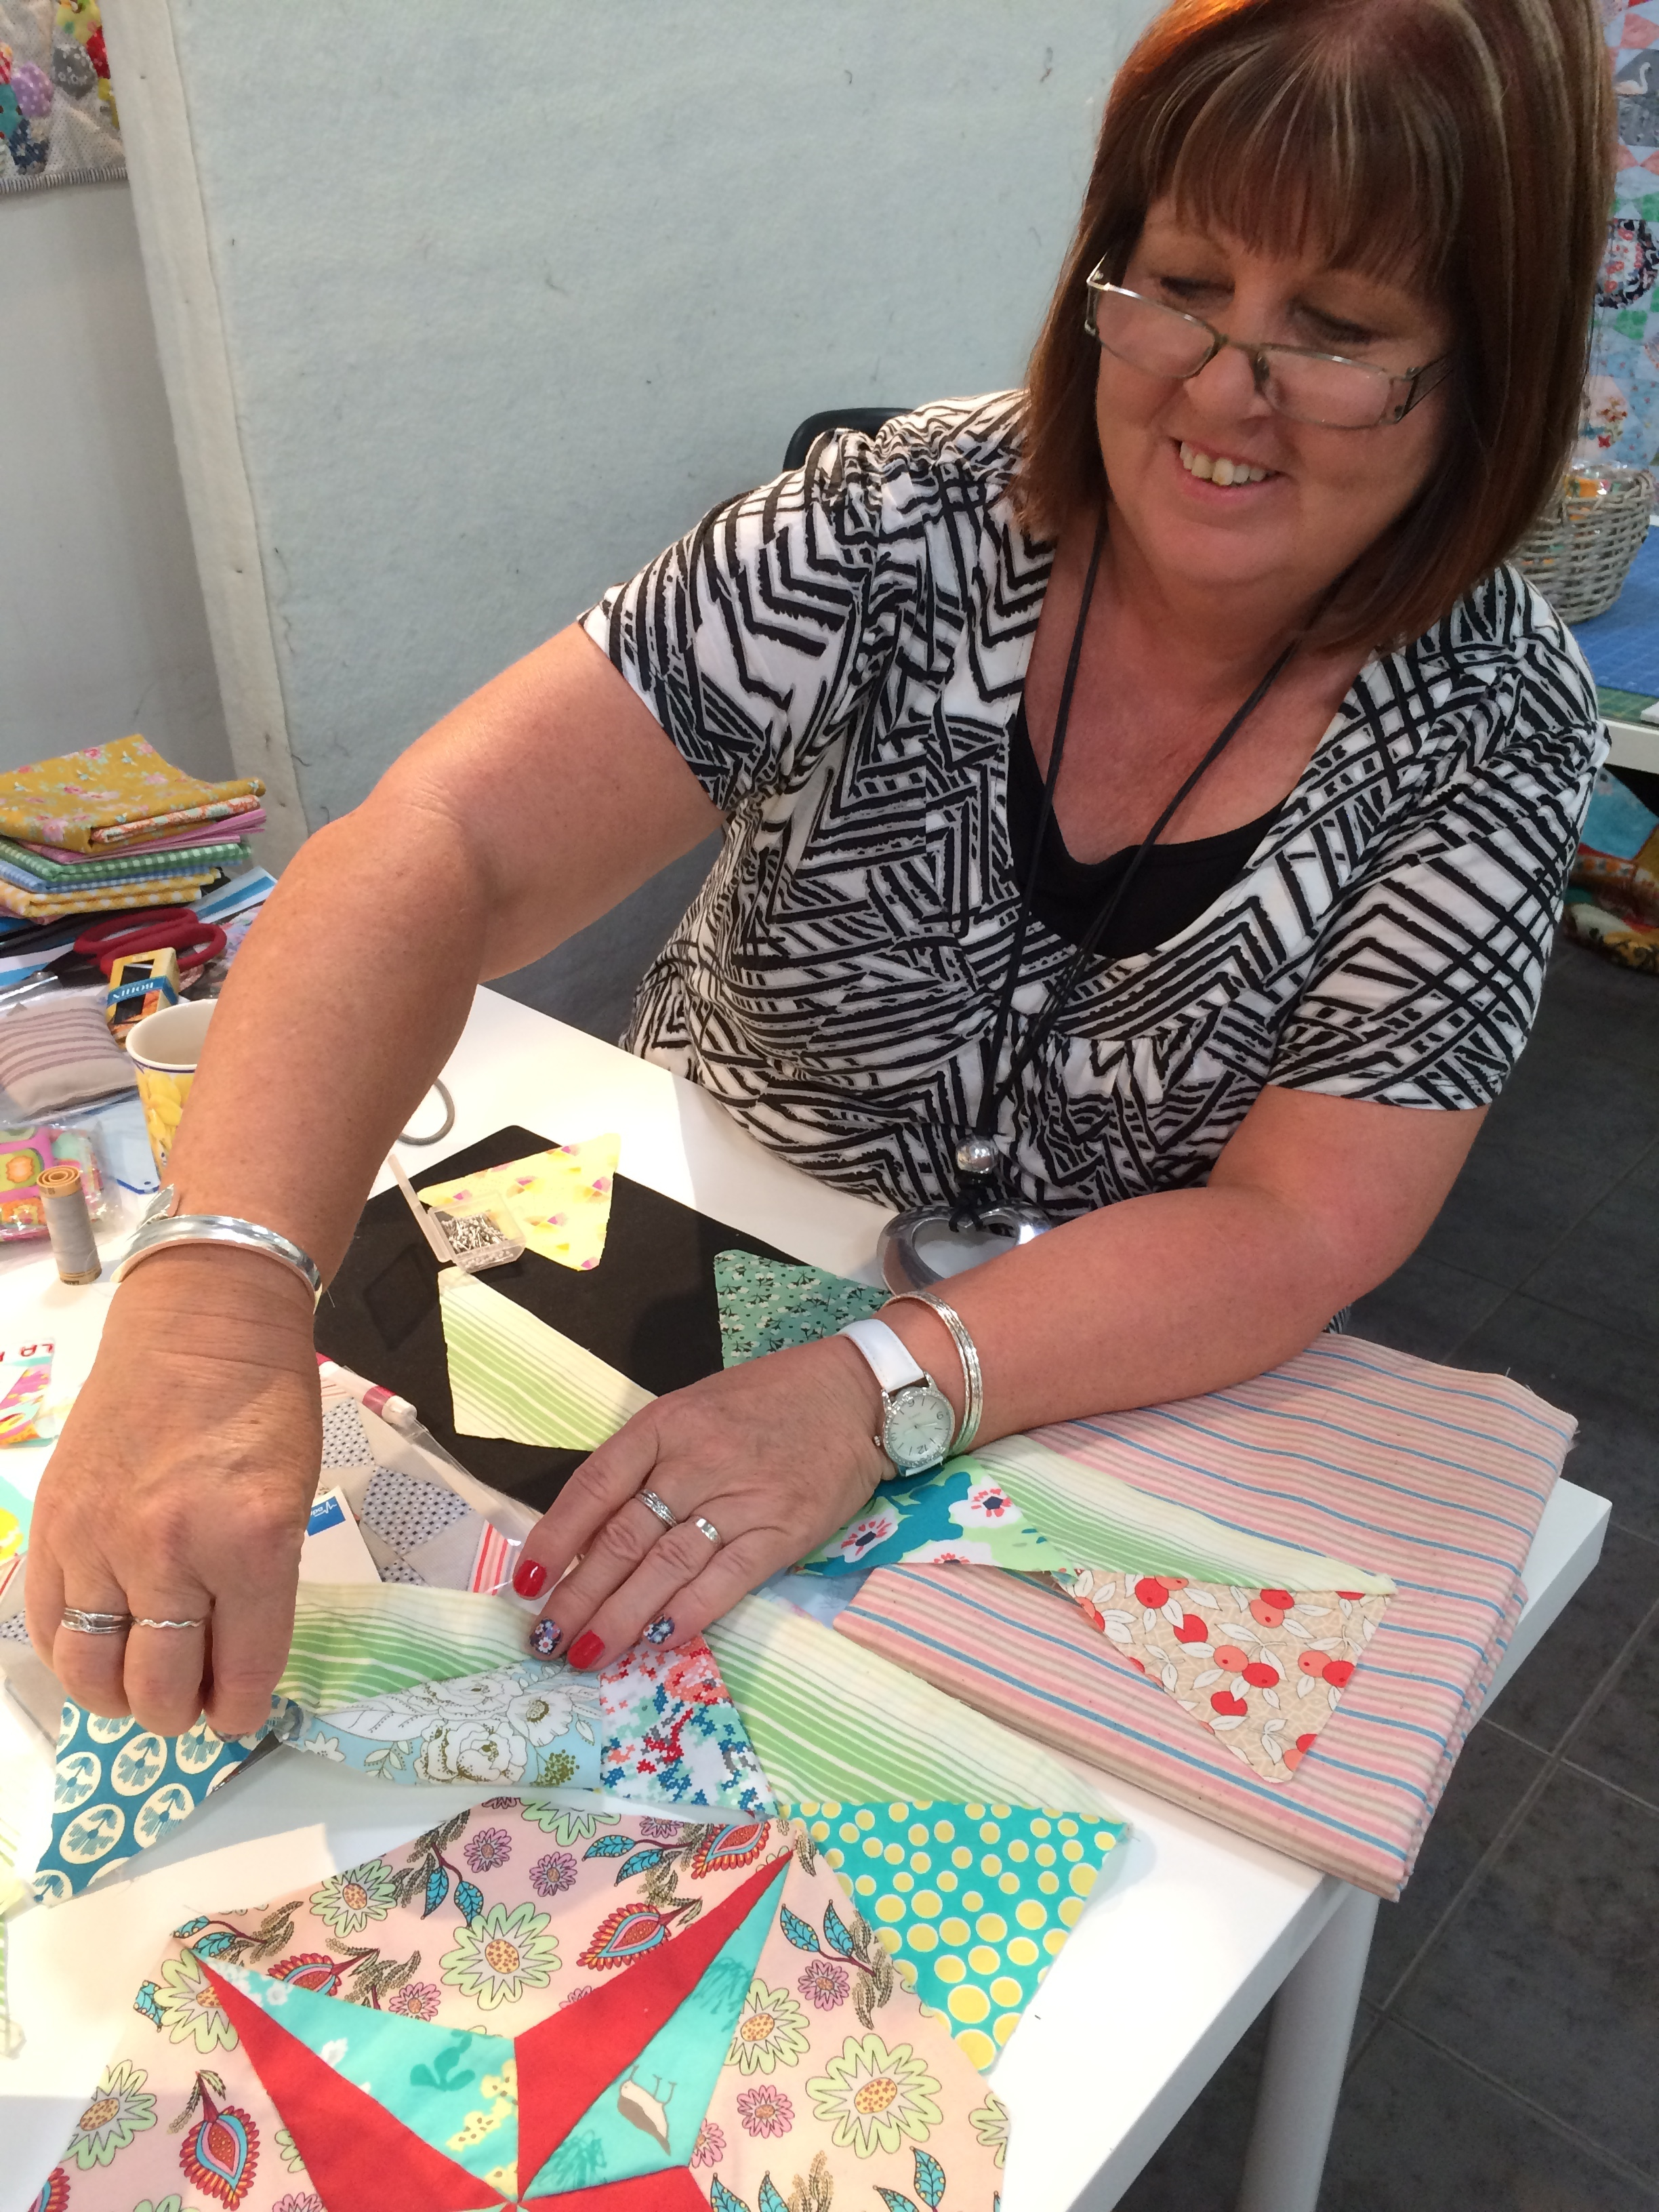 Sue and her Mayfair block that includes beautiful Art Gallery and Kathy Doughty fabrics. Sue's nails almost match her fabric choices, so I wonder then if choosing her fabric was a conscious choice or does she naturally tend to choose those colours?